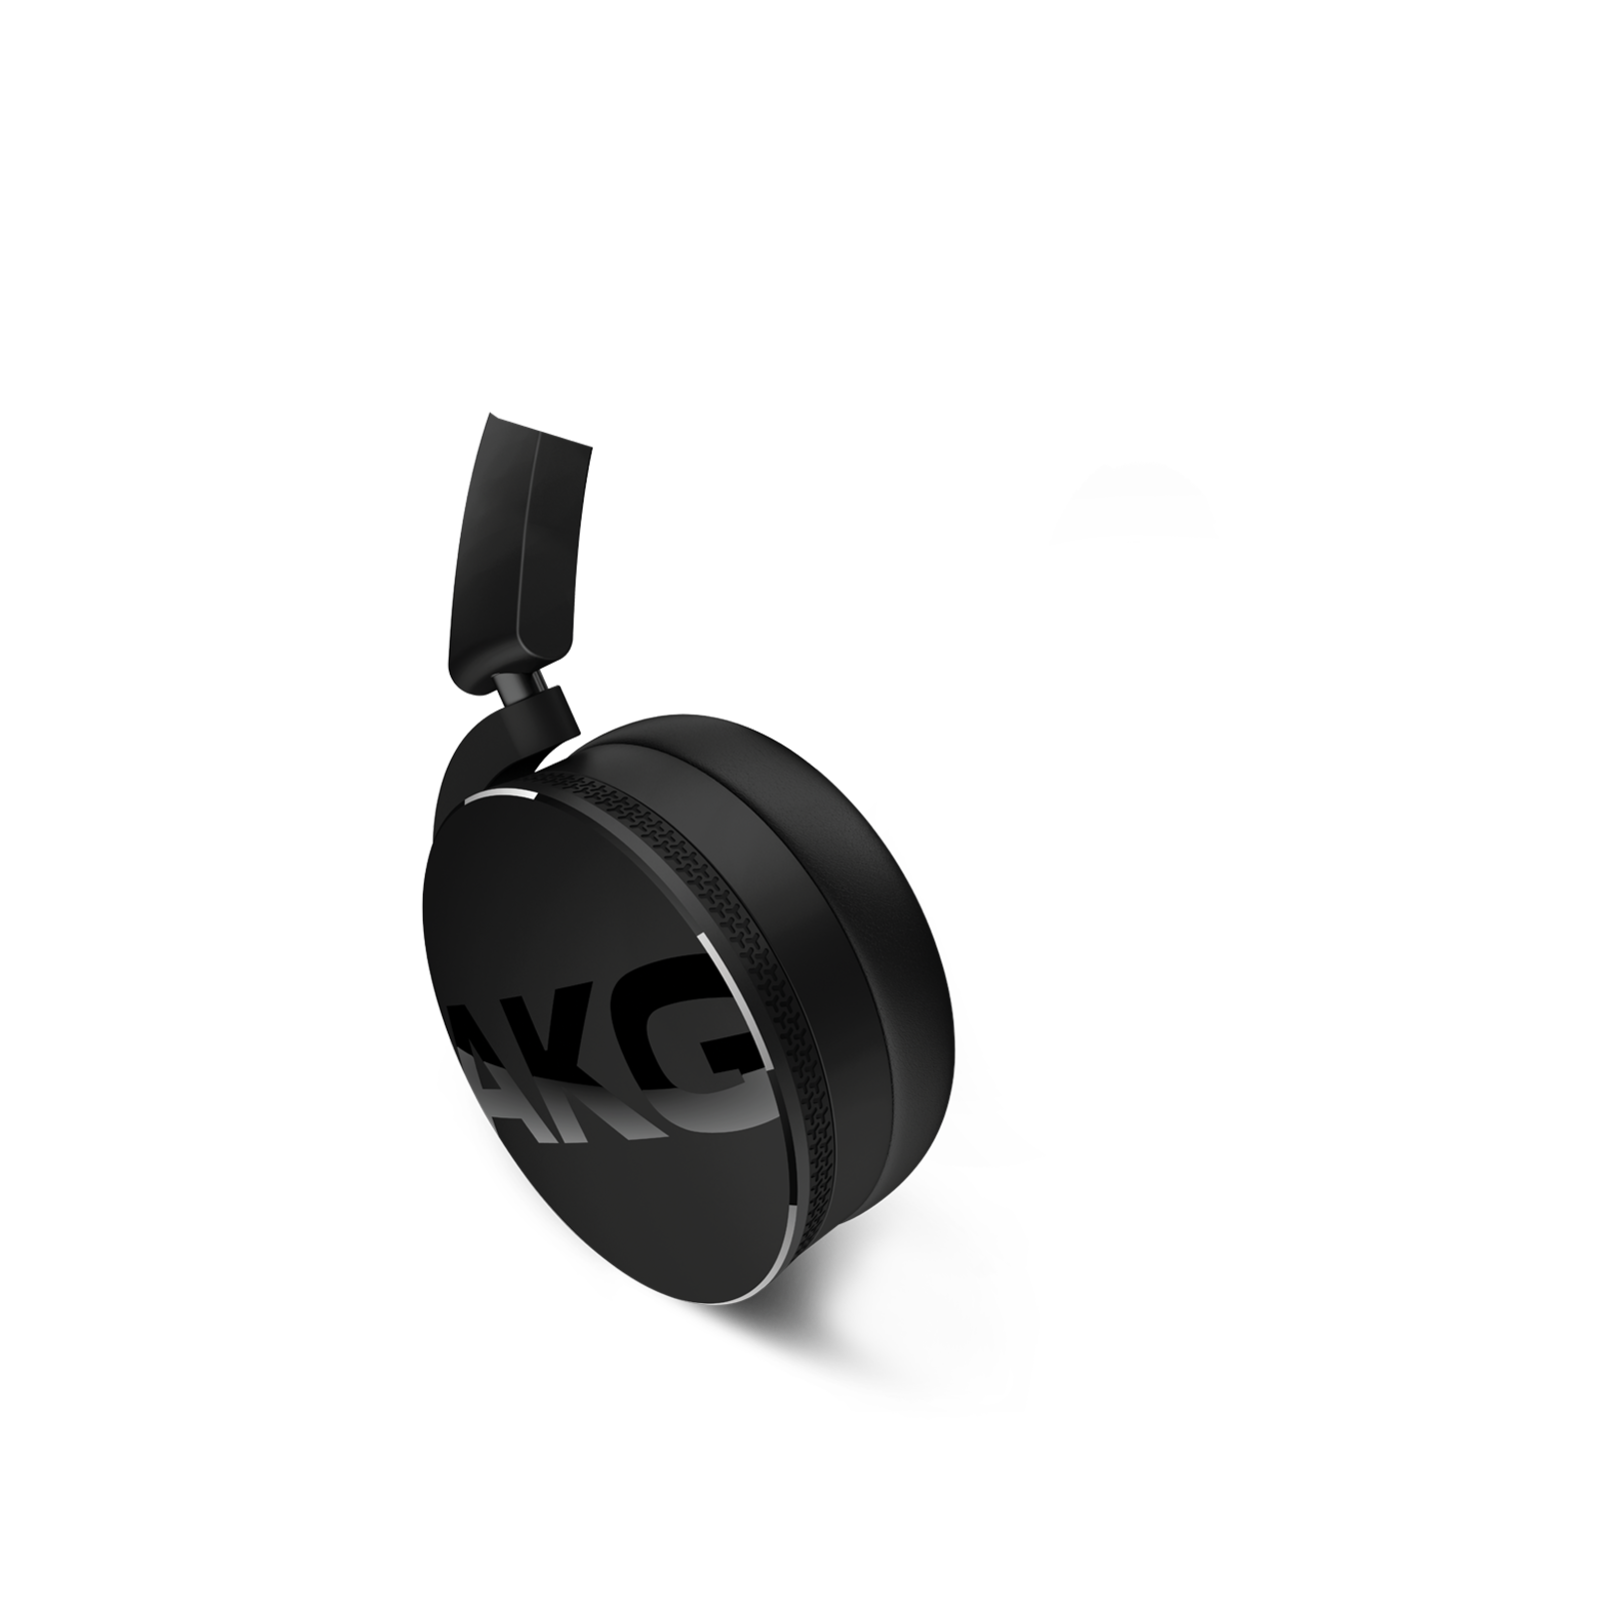 Y50 - Black - On-ear headphones with AKG-quality sound, smart styling, snug fit and detachable cable with in-line remote/mic - Detailshot 1